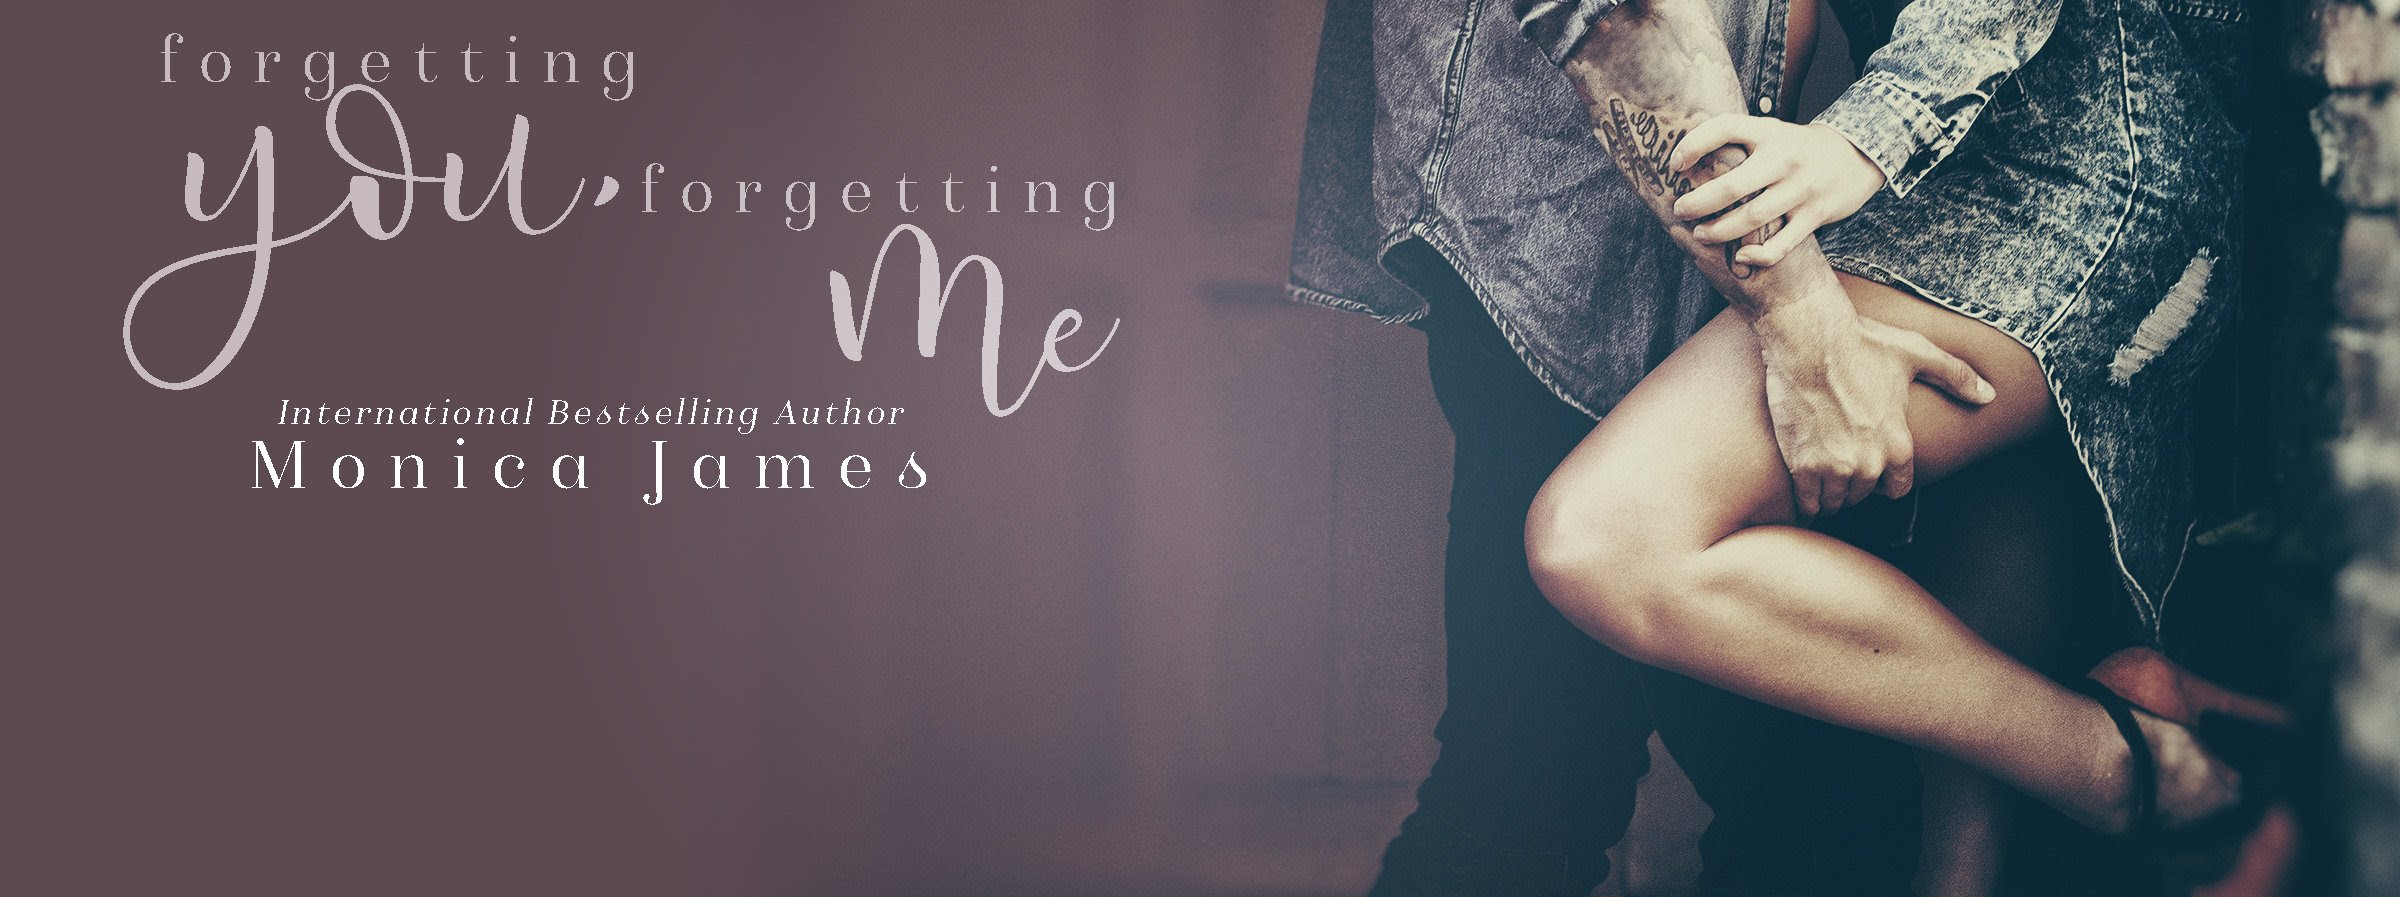 Excerpt from Forgetting You, Forgetting Me by Monica James